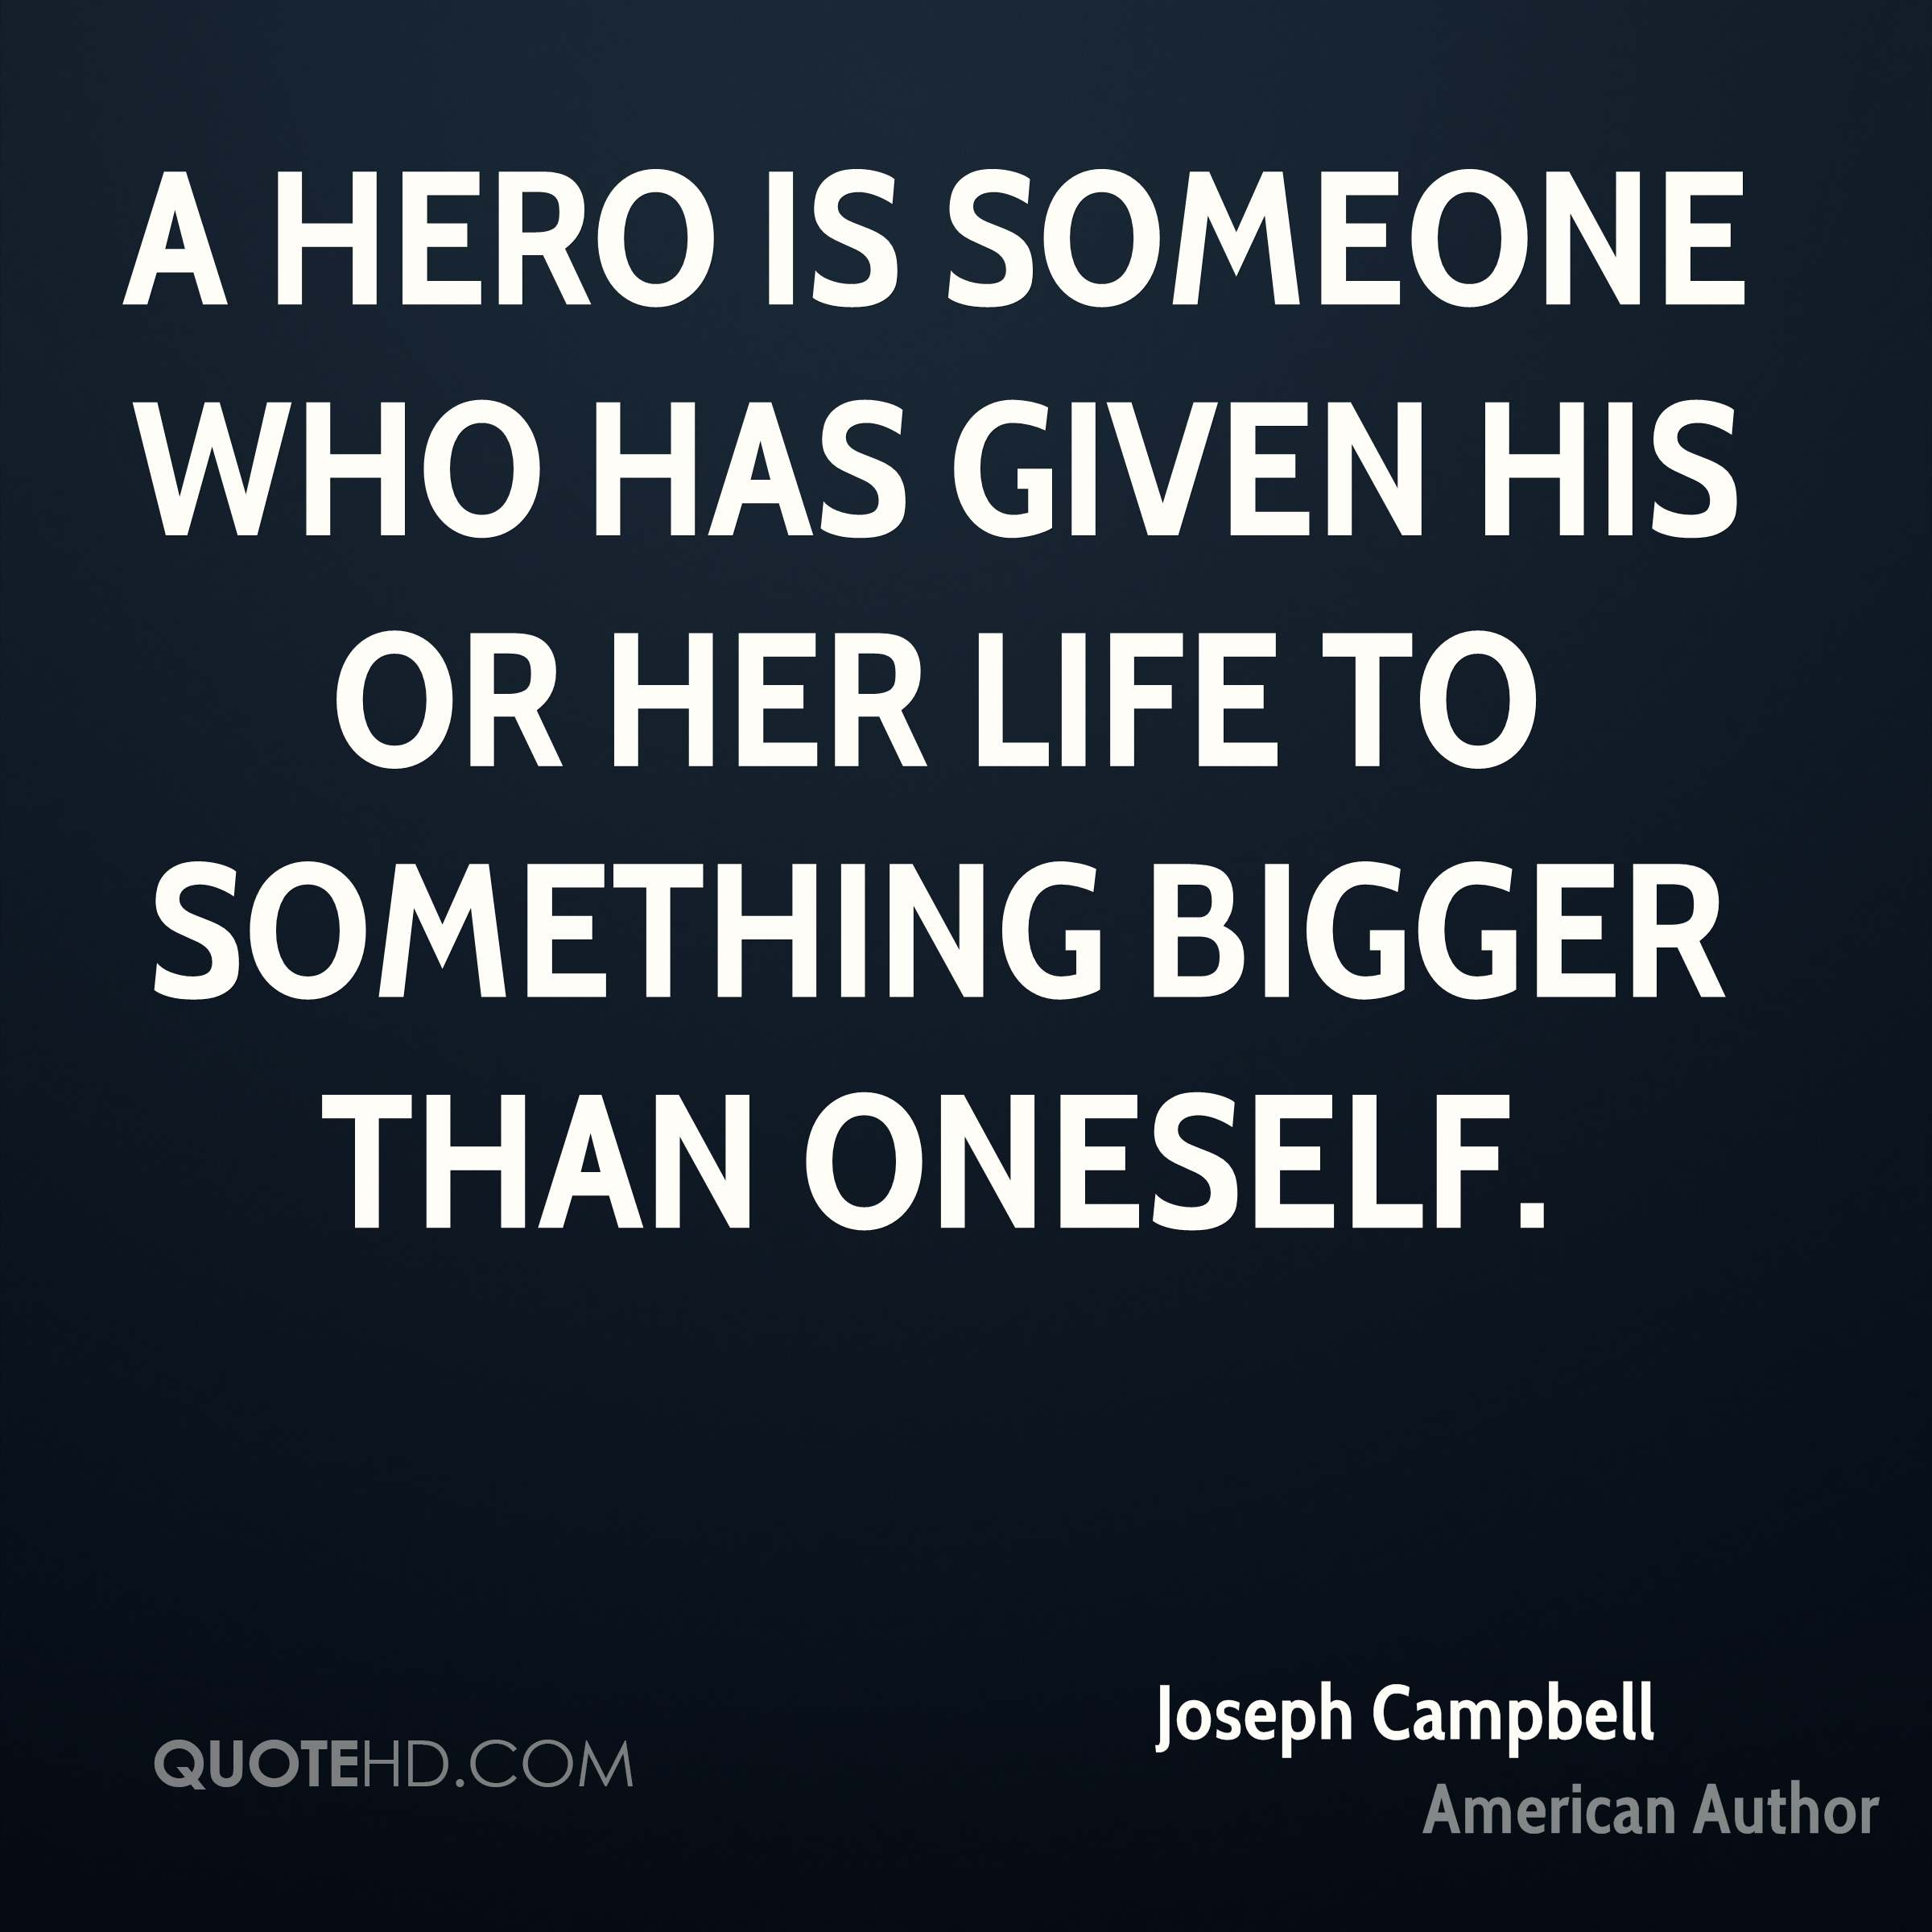 Life Quotes By Authors: Joseph Campbell Life Quotes